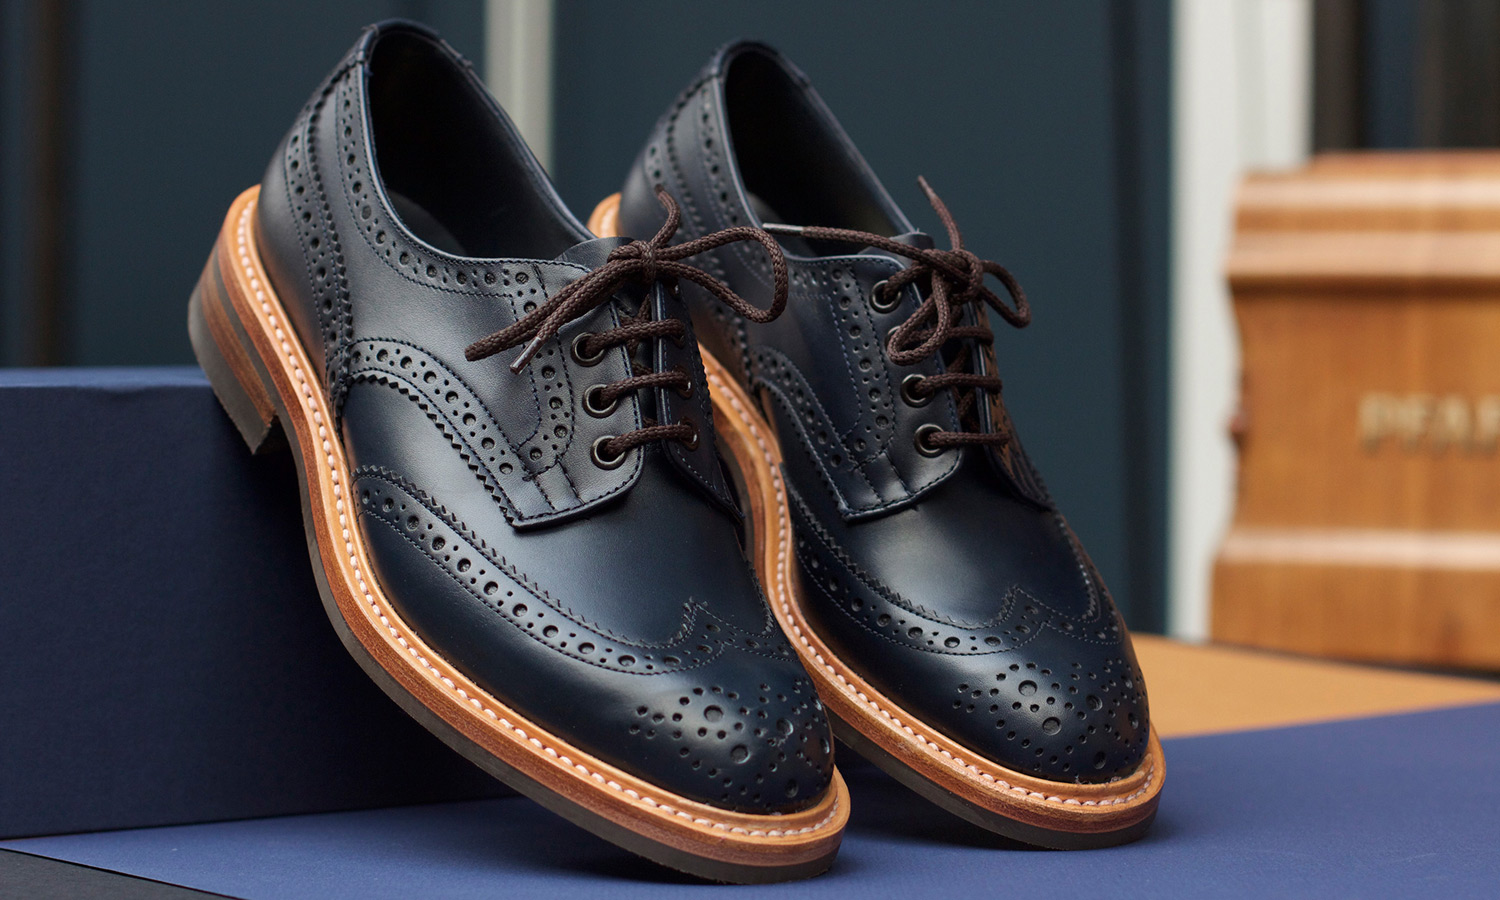 Trickers-TenuedeNimes-ss2015-feat